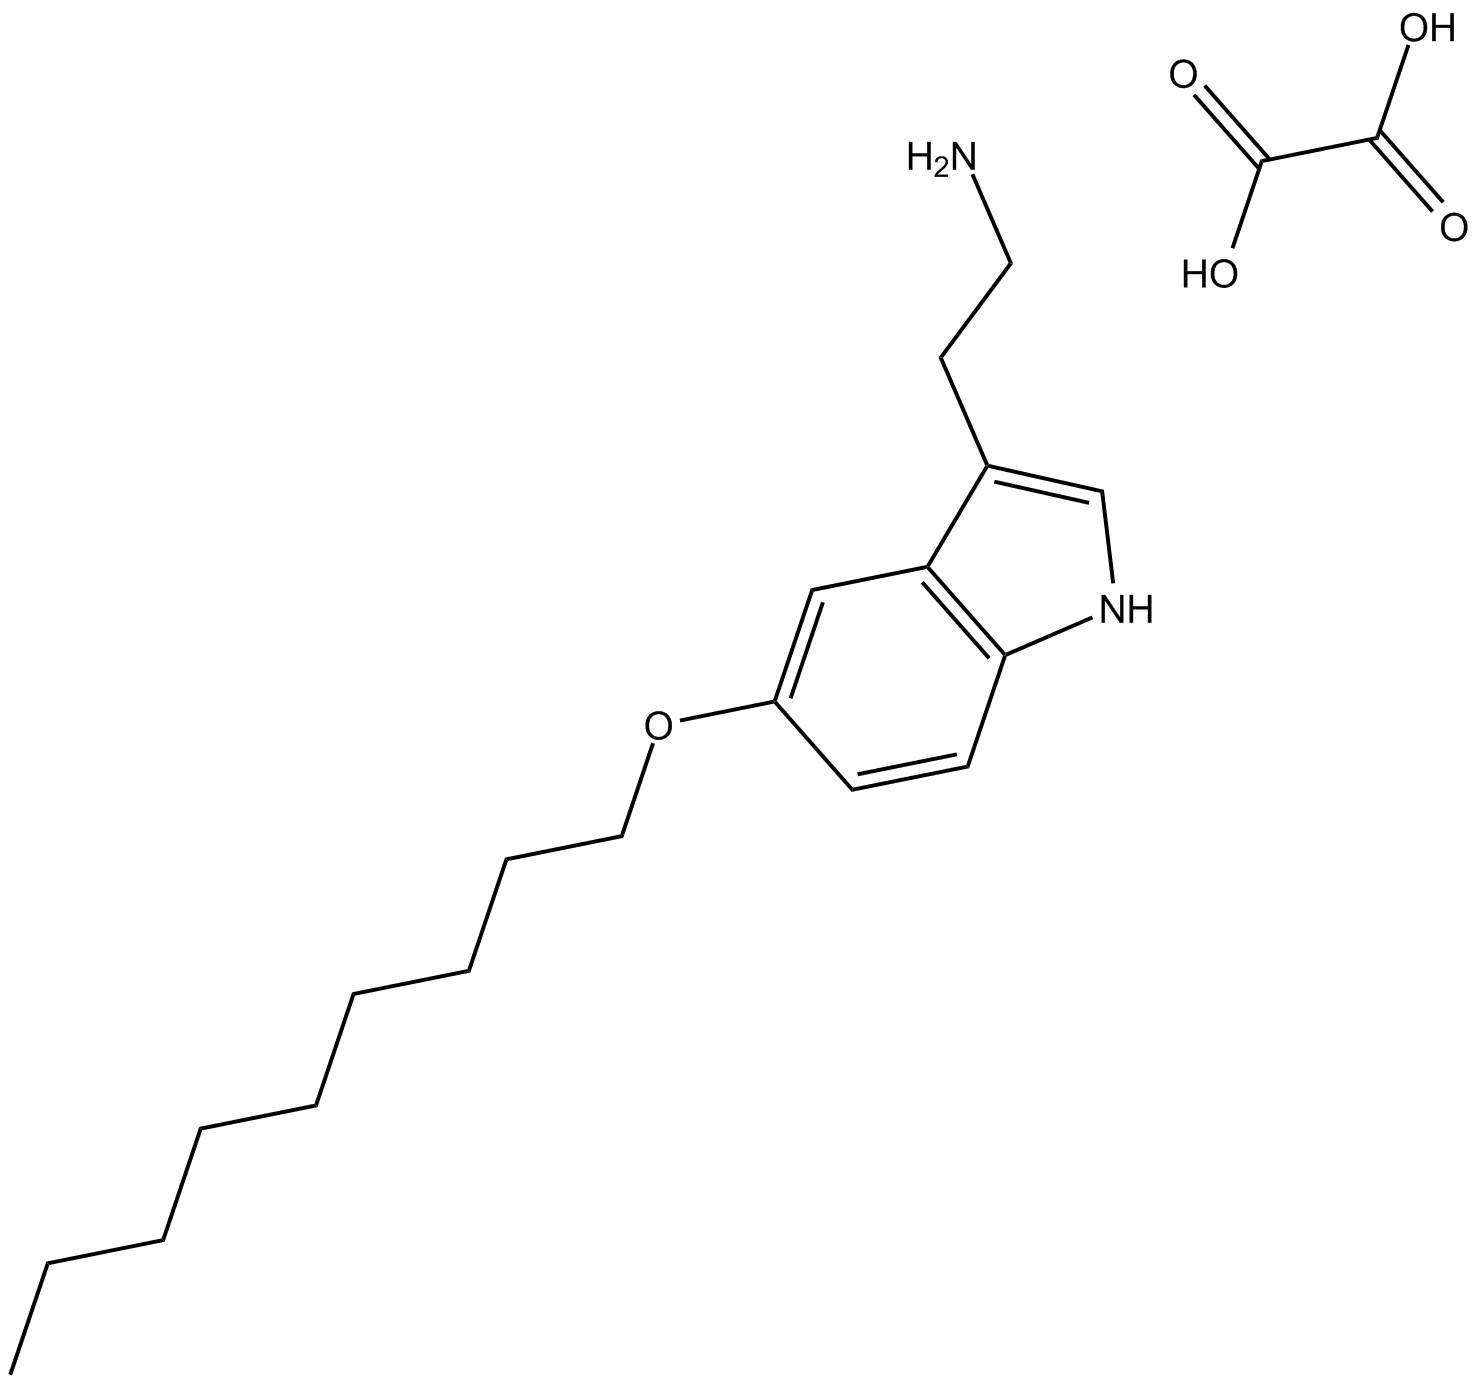 5-Nonyloxytryptamine oxalate